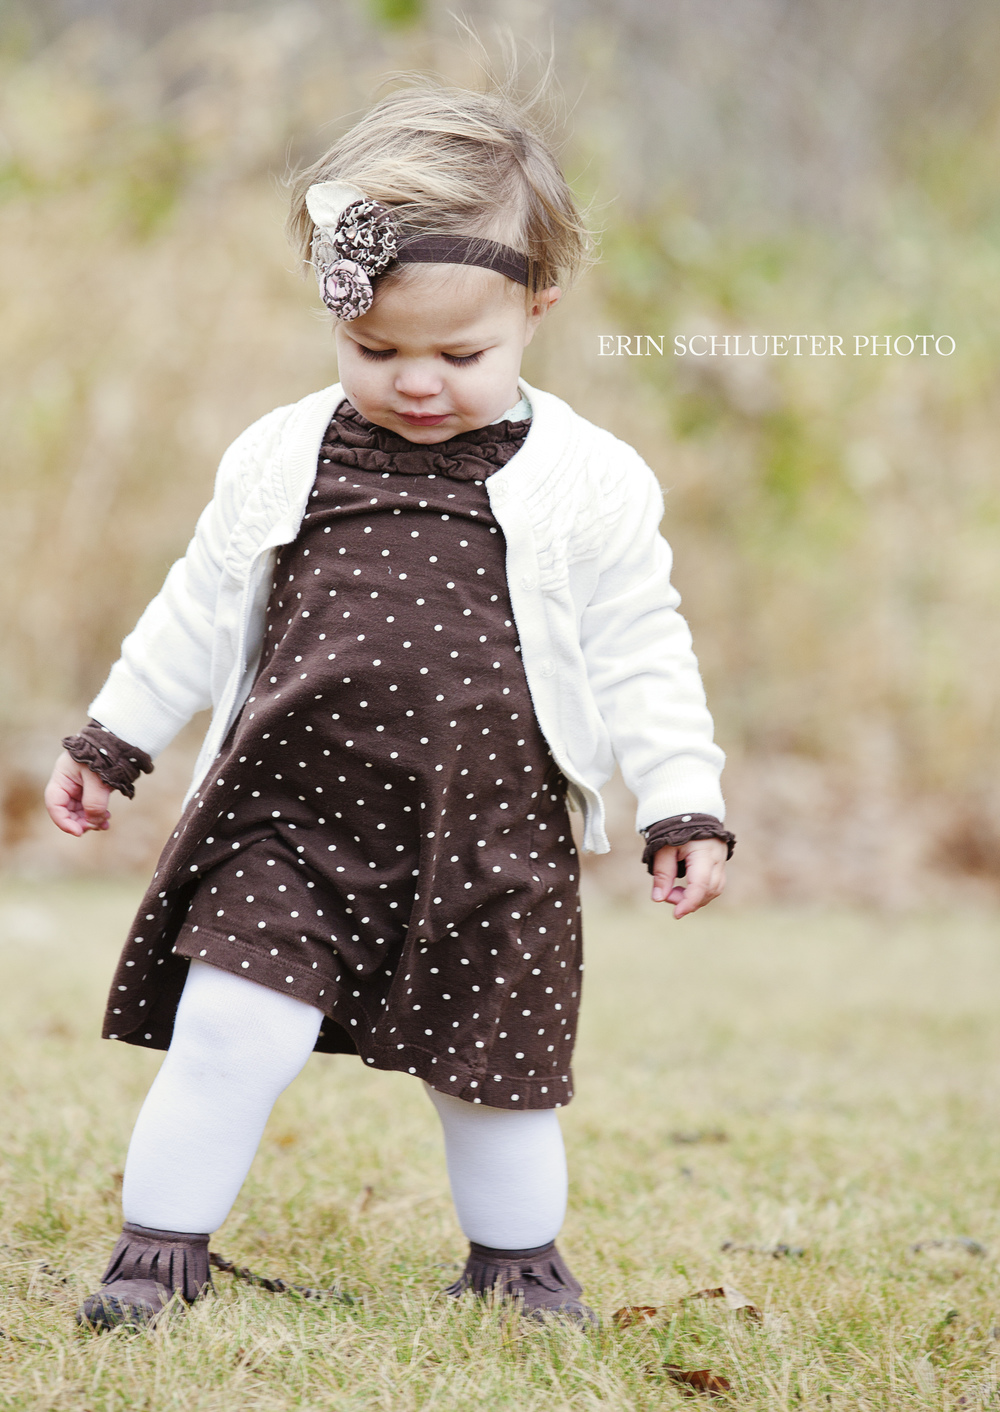 McClane was such a sweetheart during our Minnesota Photo Session. How cute is her outfit?